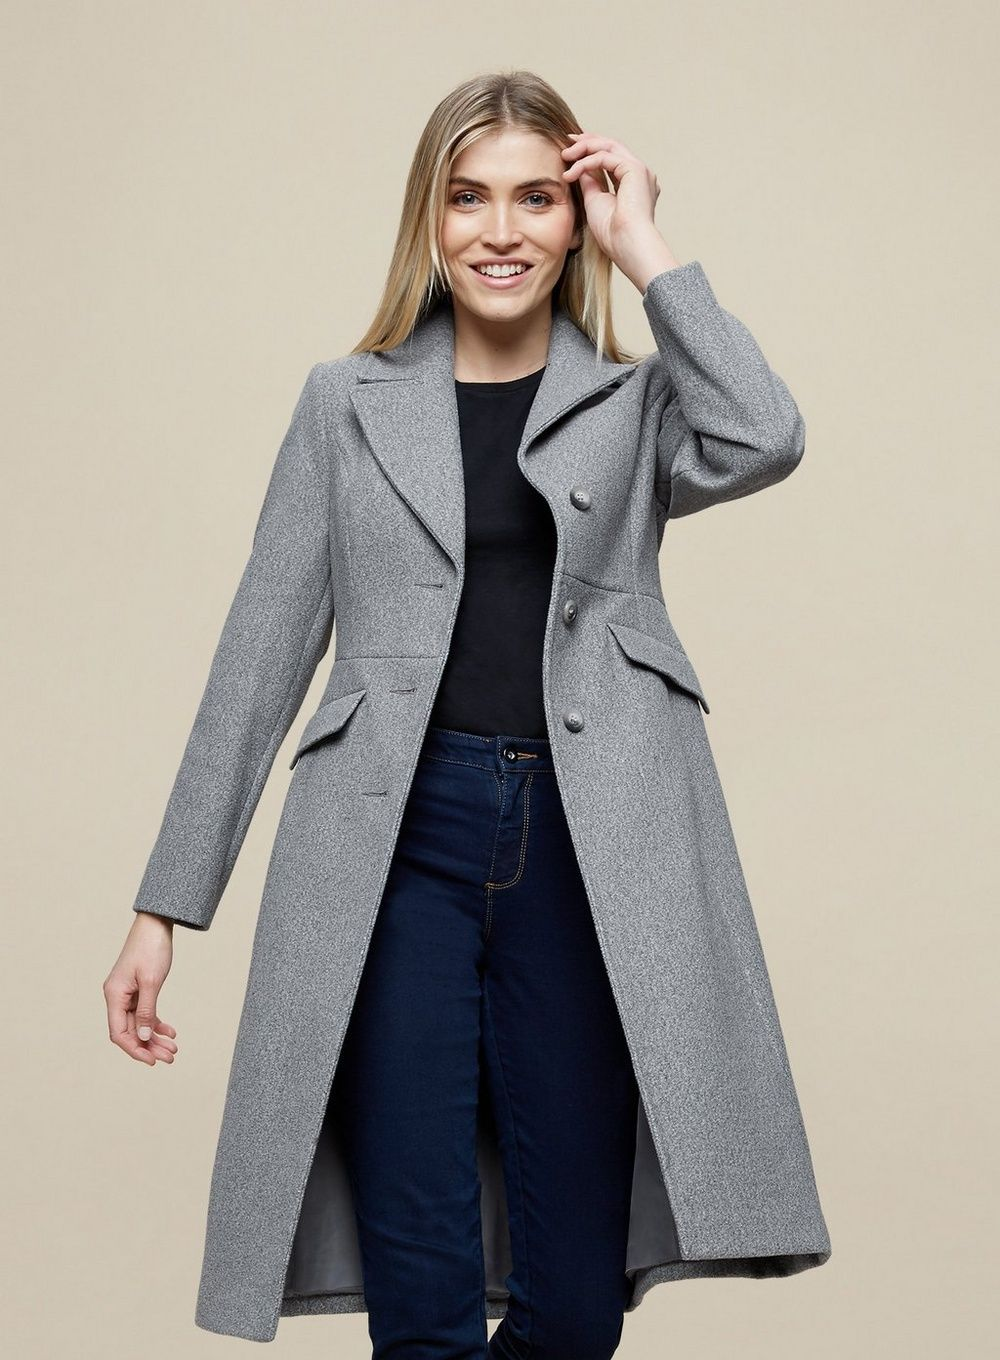 Dorothy Perkins Womens Grey Fit and Flare Lady Coat Winter Jacket Outwear Top